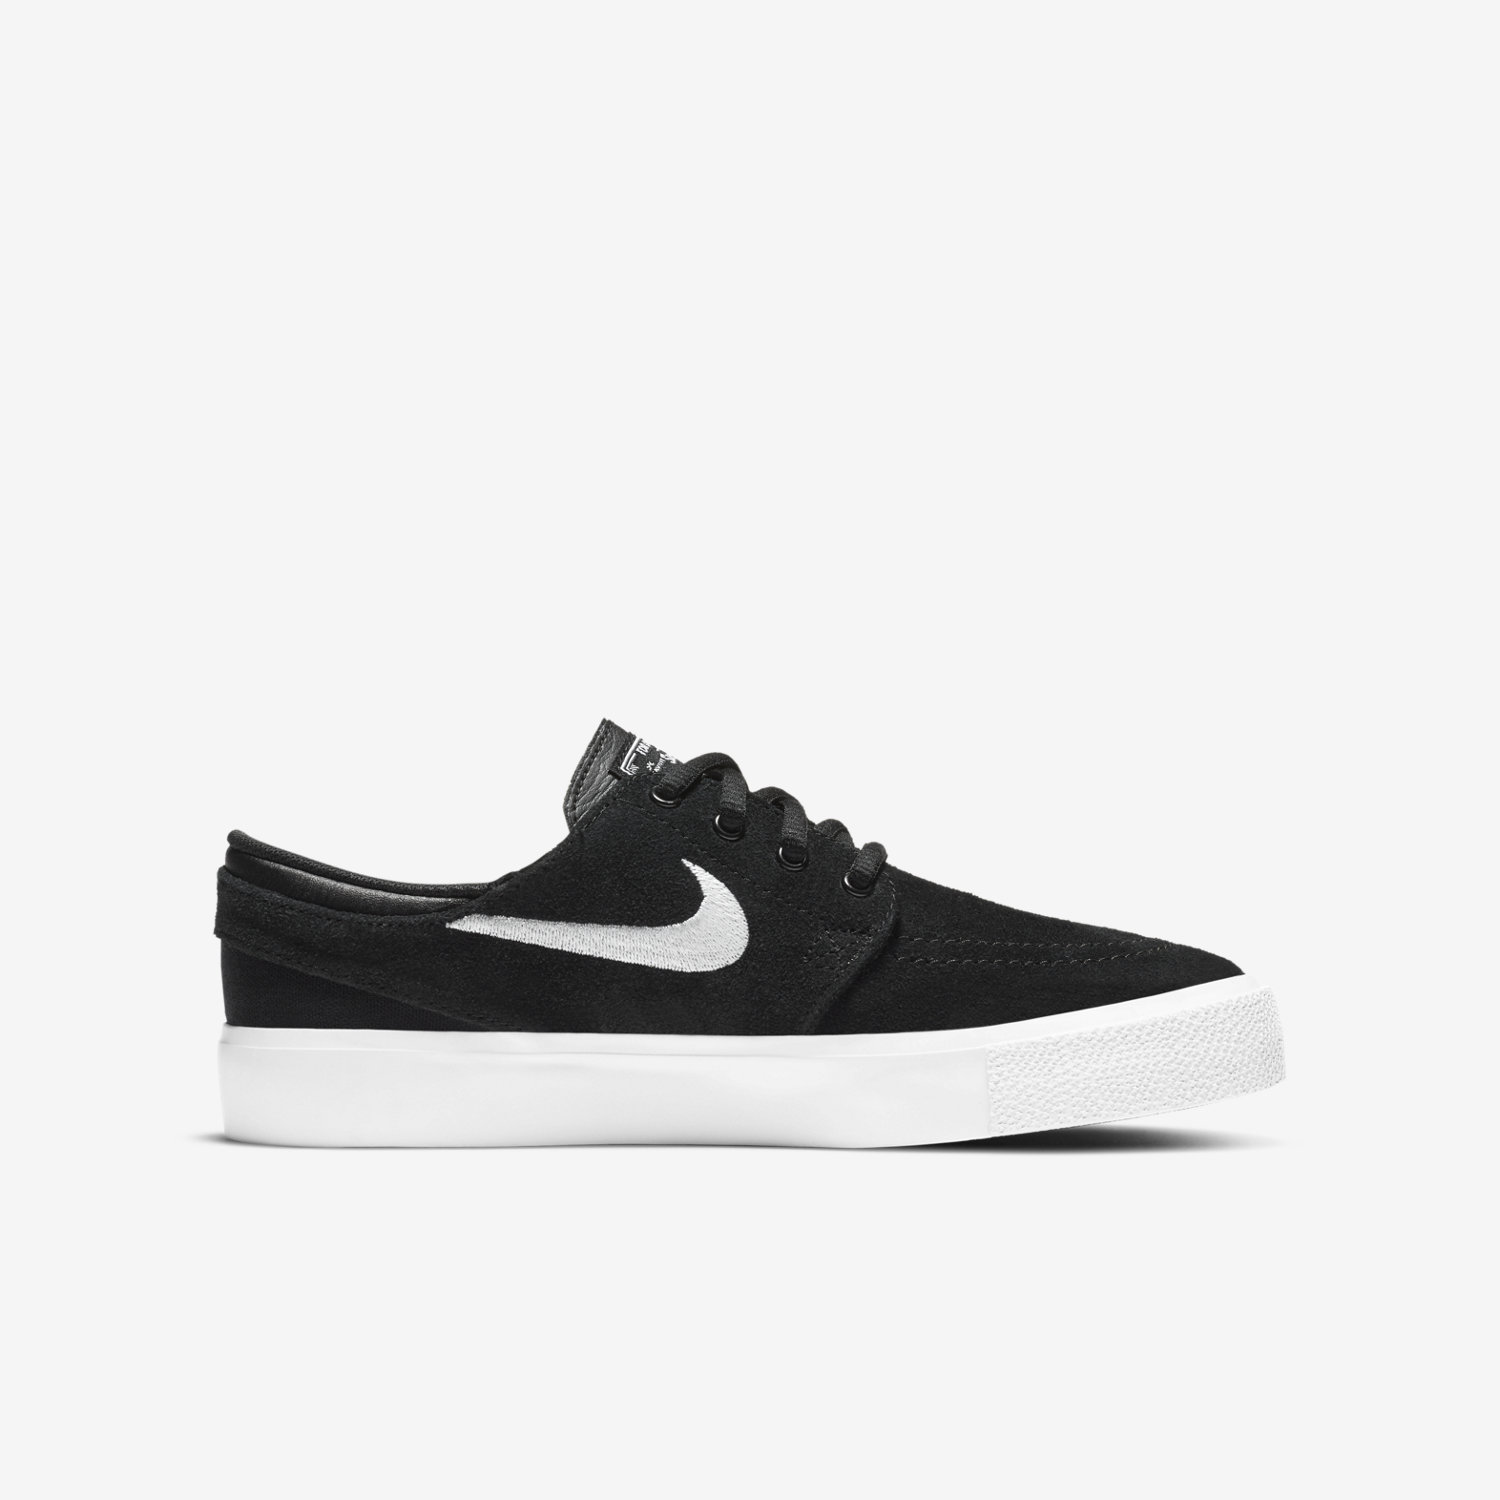 Cheap nike skate shoes all black Buy Online  OFF43% Discounted 3efa9a9b5